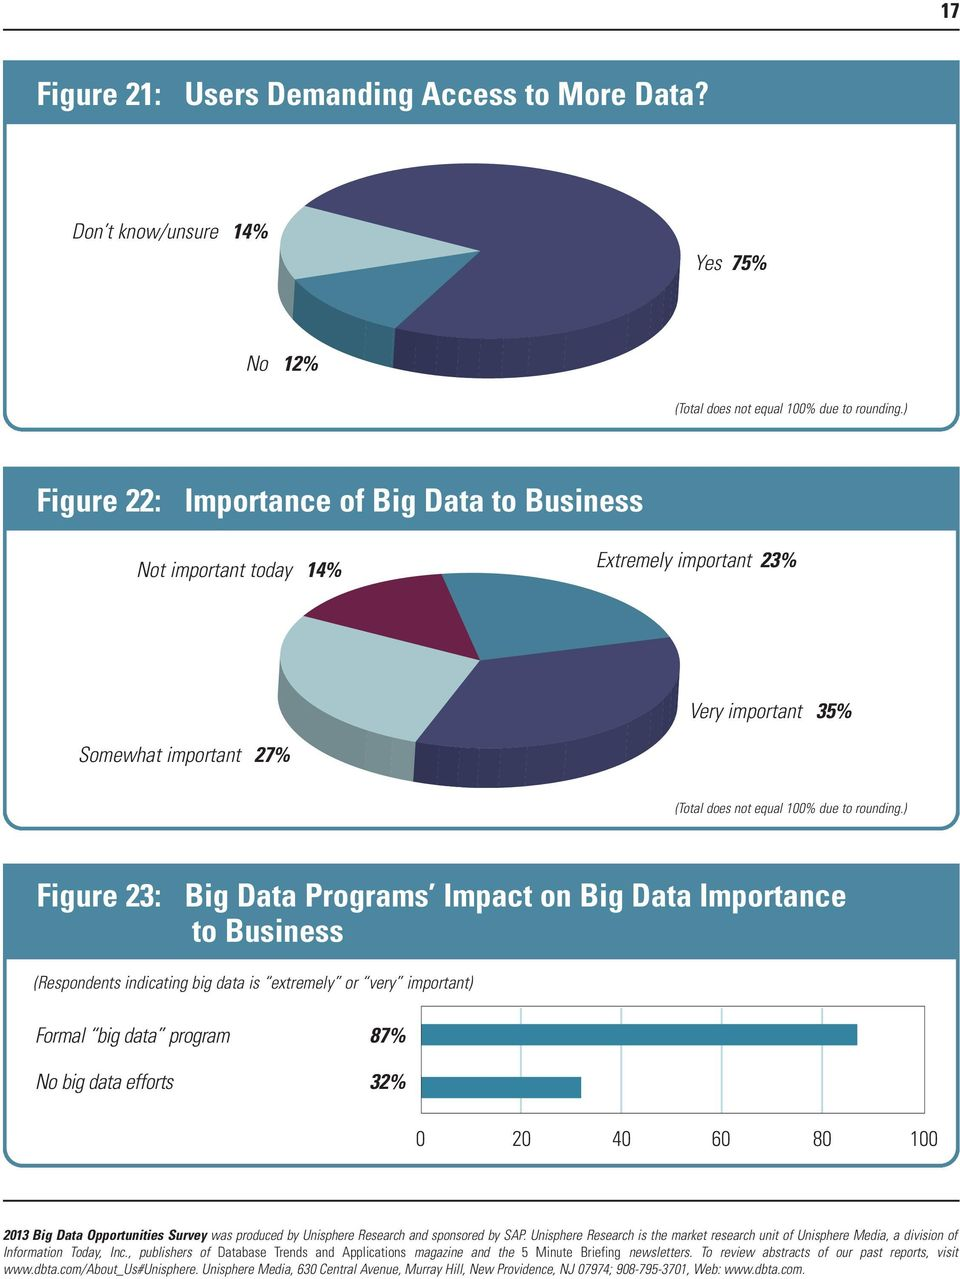 ) Figure 22: Importance of Big Data to Business Not important today 14% Extremely important 23% Very important 35% Somewhat